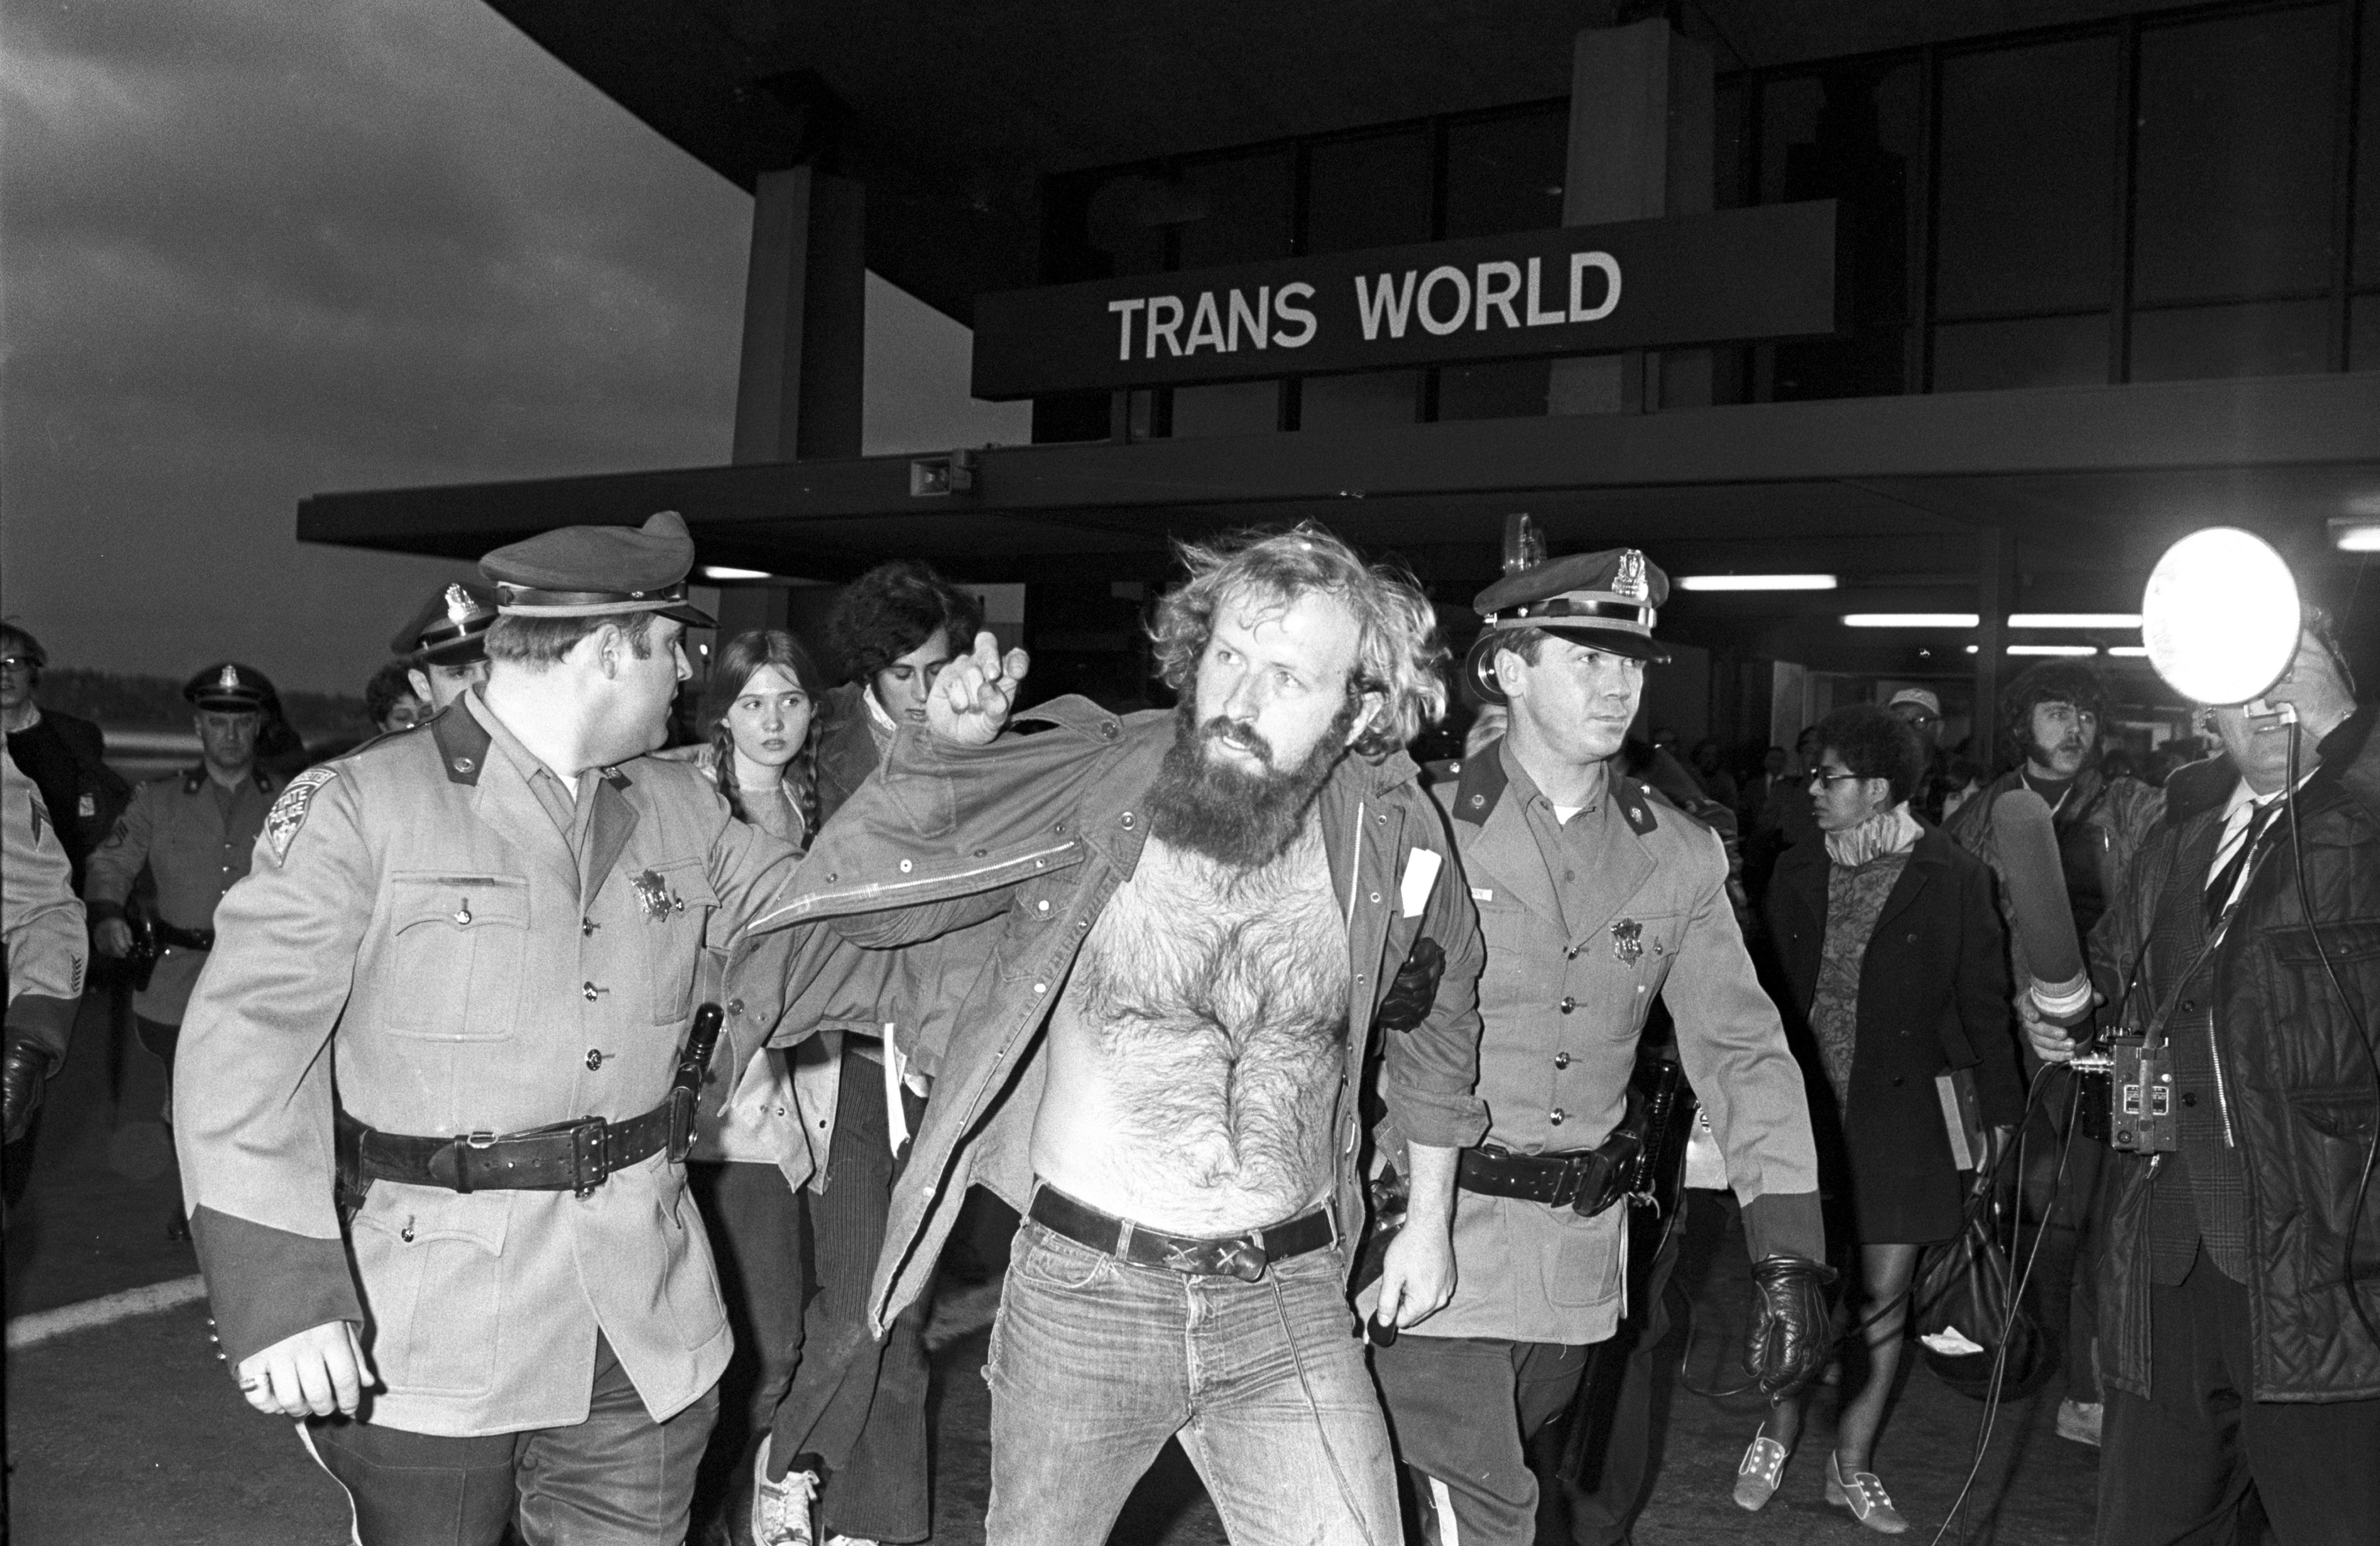 Police arrest a protestor during an Earth Day demonstration at Boston's Logan Airport, August, 1970.